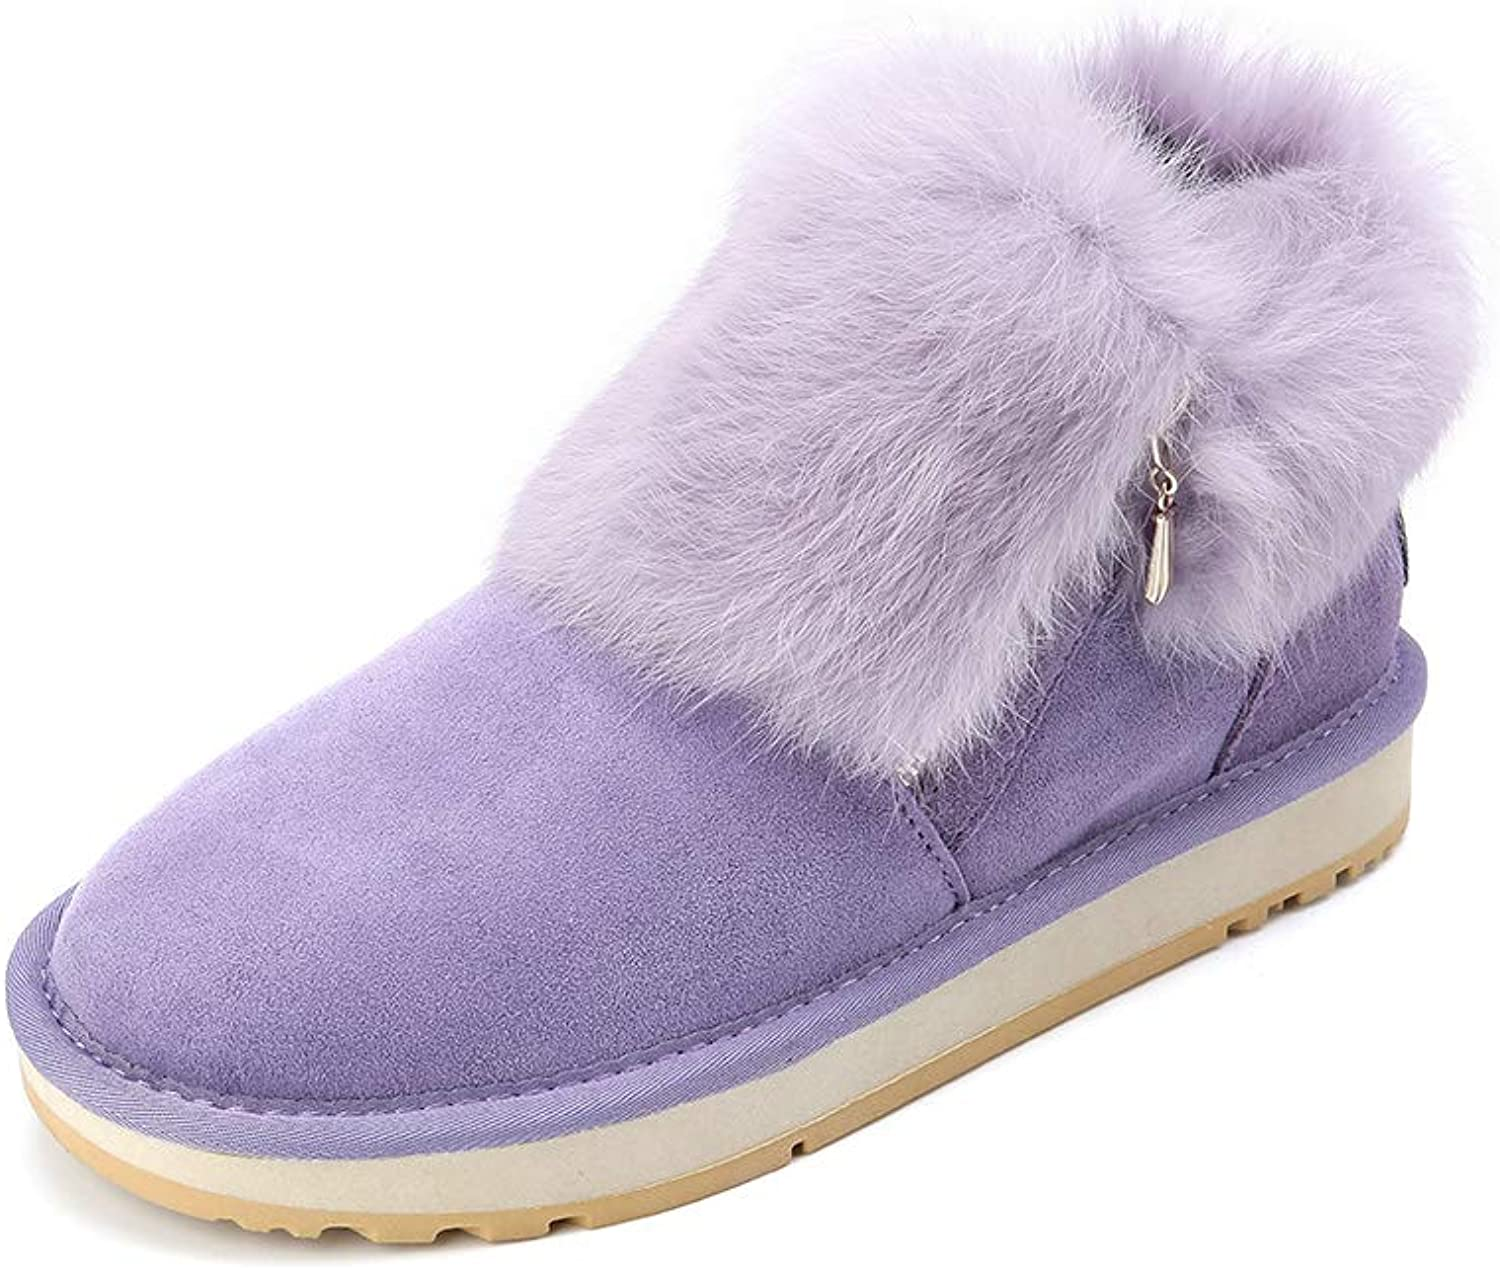 INOE CREATE GLAMOUR Fashion Real Sheepskin Leather Suede Fur Lined Women Rabbit Fur Winter Short Ankle Snow Boots for Girls Zipper Winter shoes